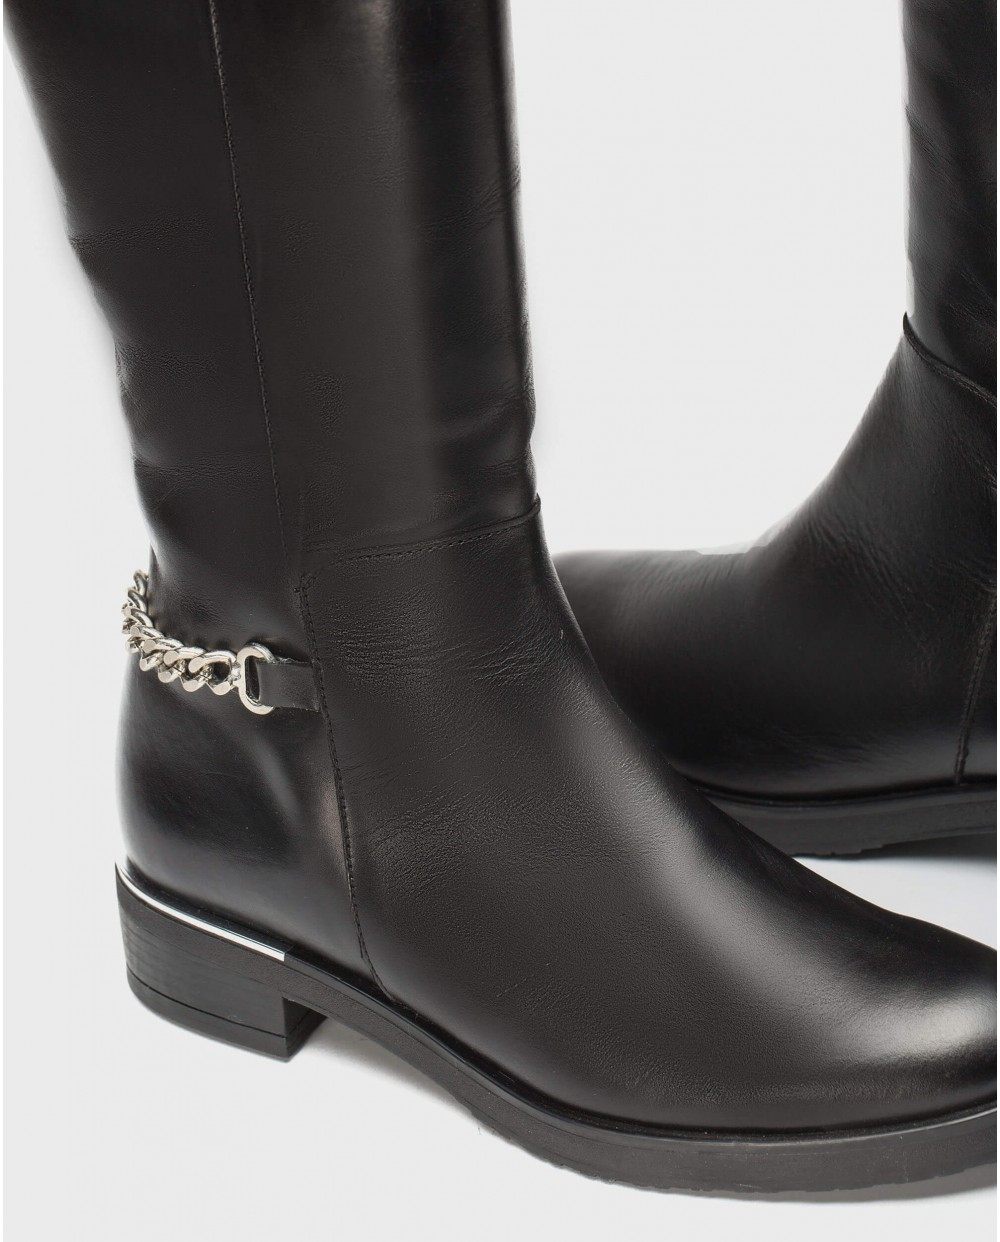 Leather boot with chain